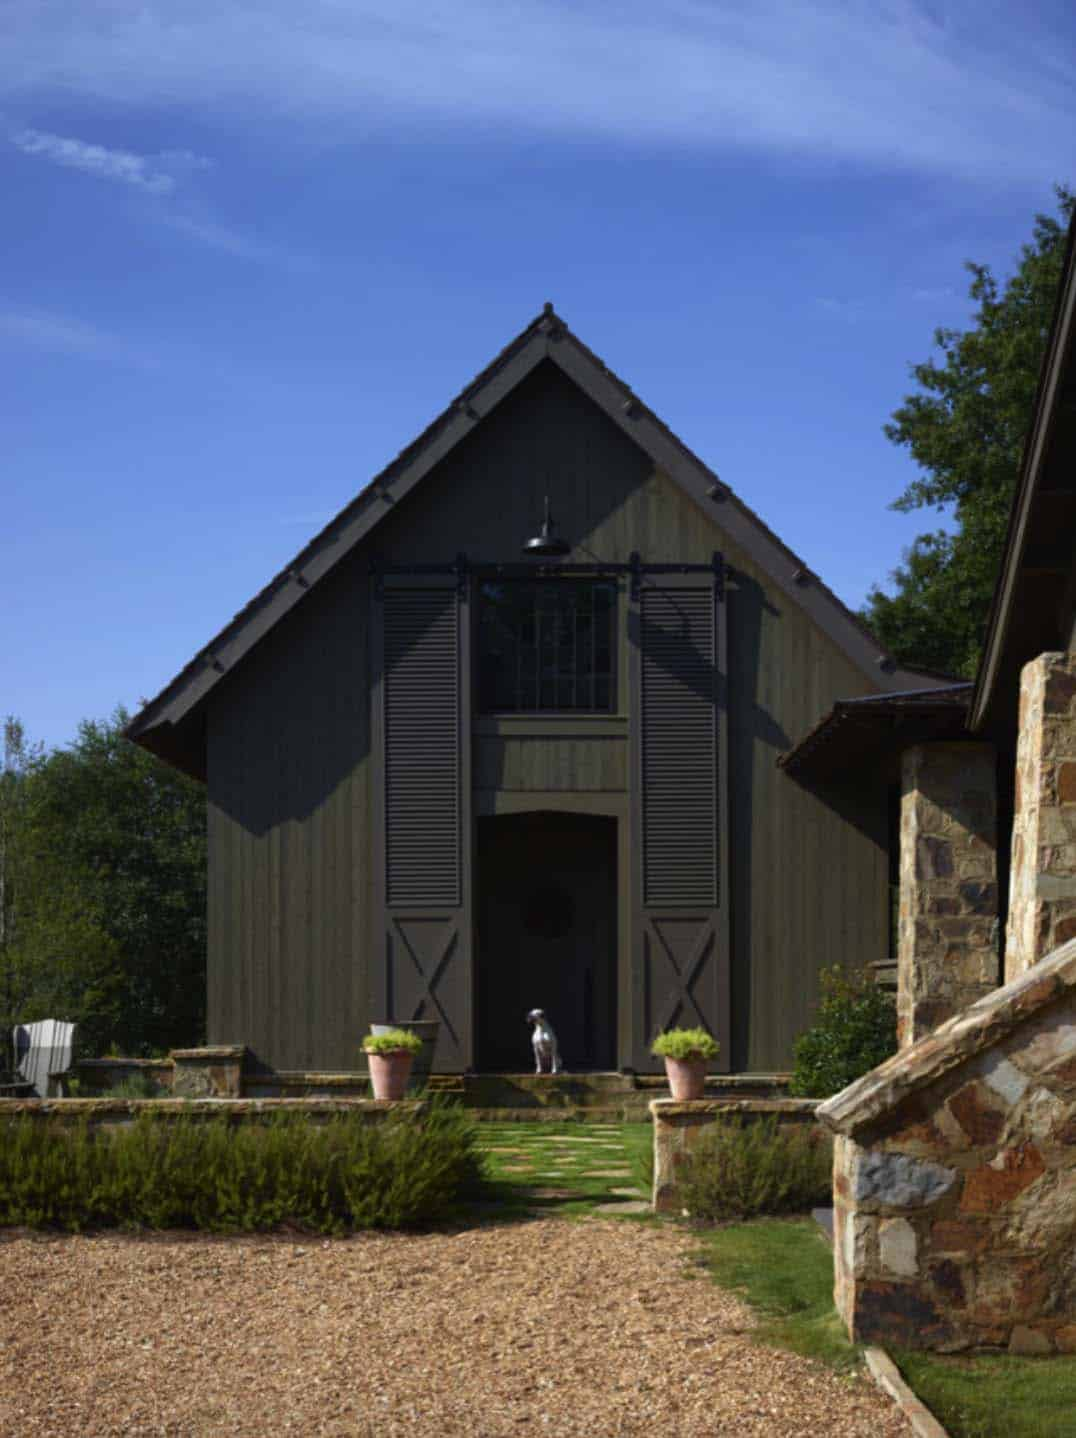 Rustic-Modern Farmhouse-Jeffrey Dungan Architects-13-1 Kindesign